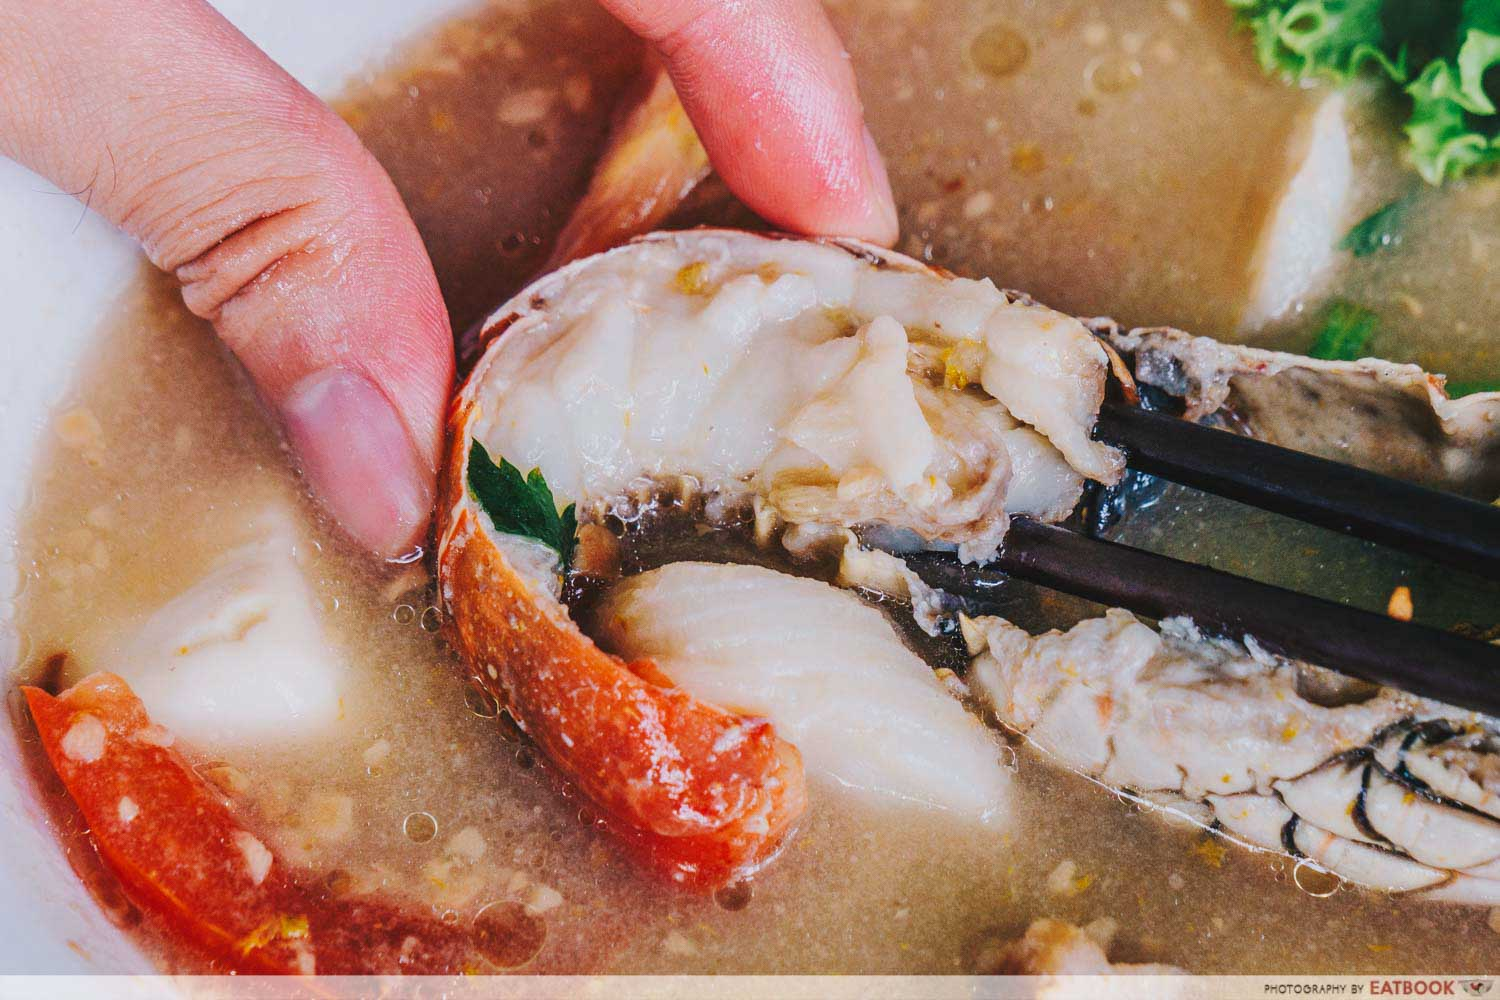 Shun Feng Crayfish Delight - Spiny Lobster Meat Closeup